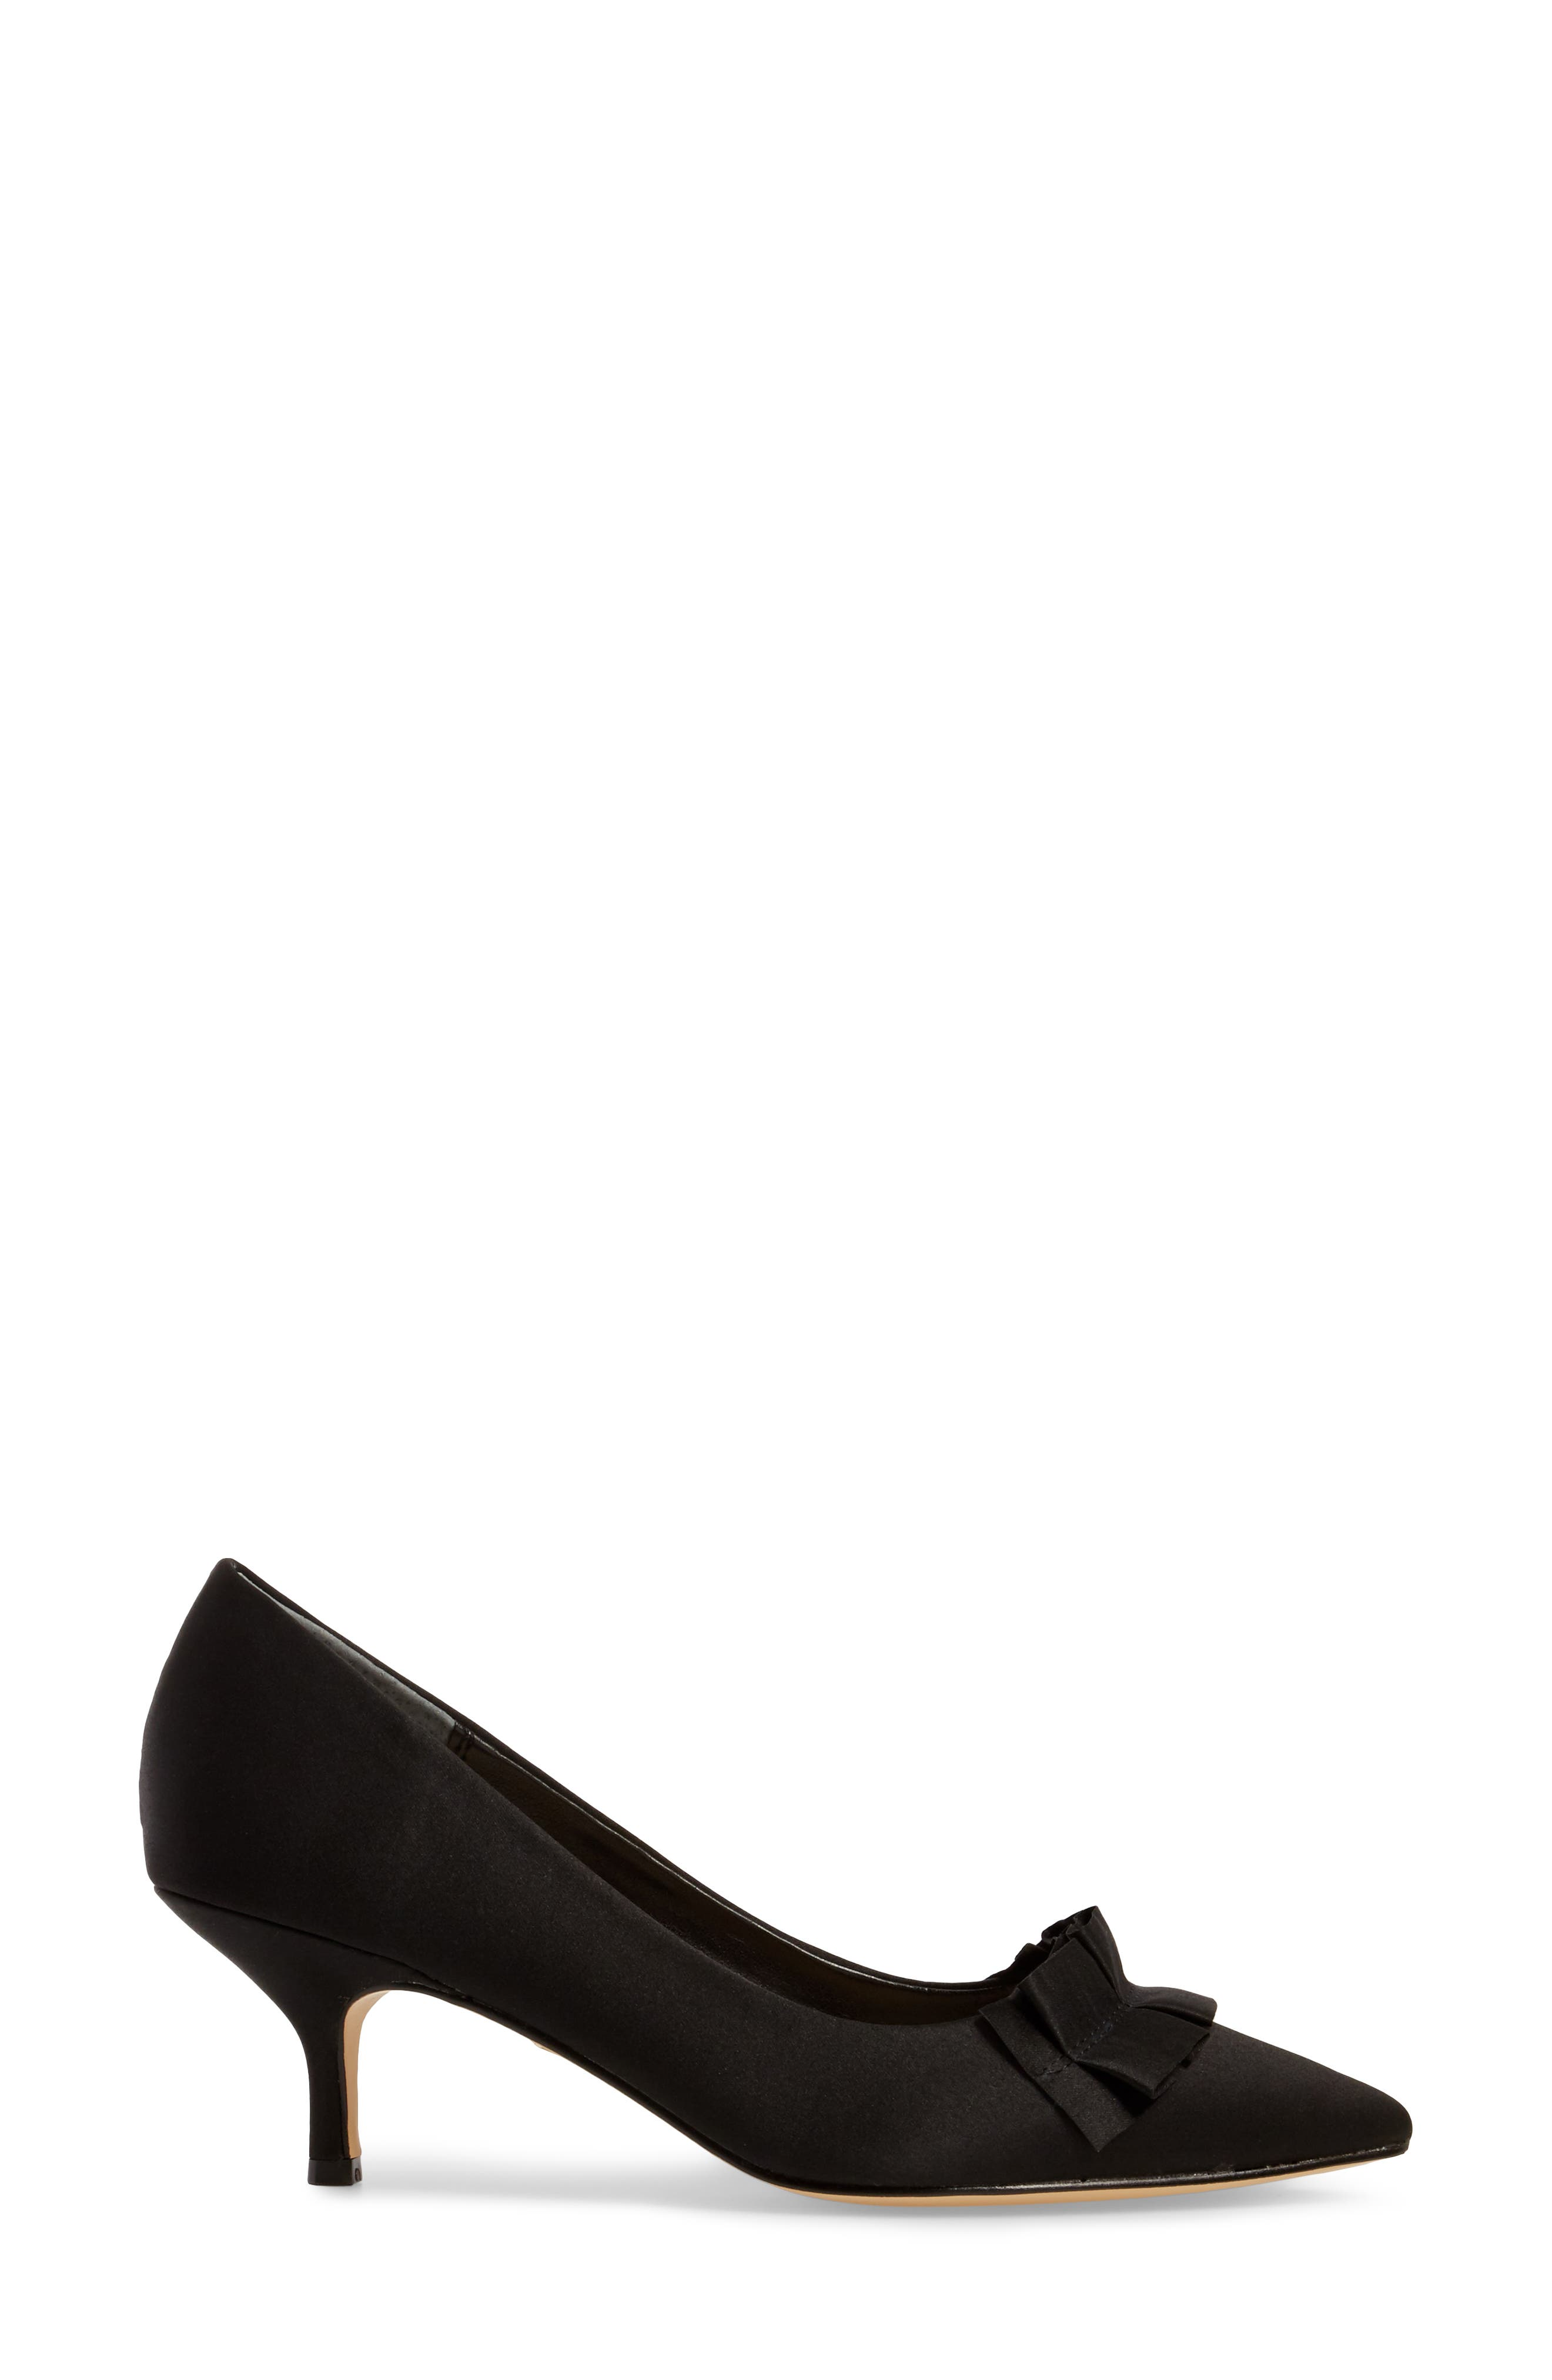 Thea Pointy Toe Pump,                             Alternate thumbnail 3, color,                             003